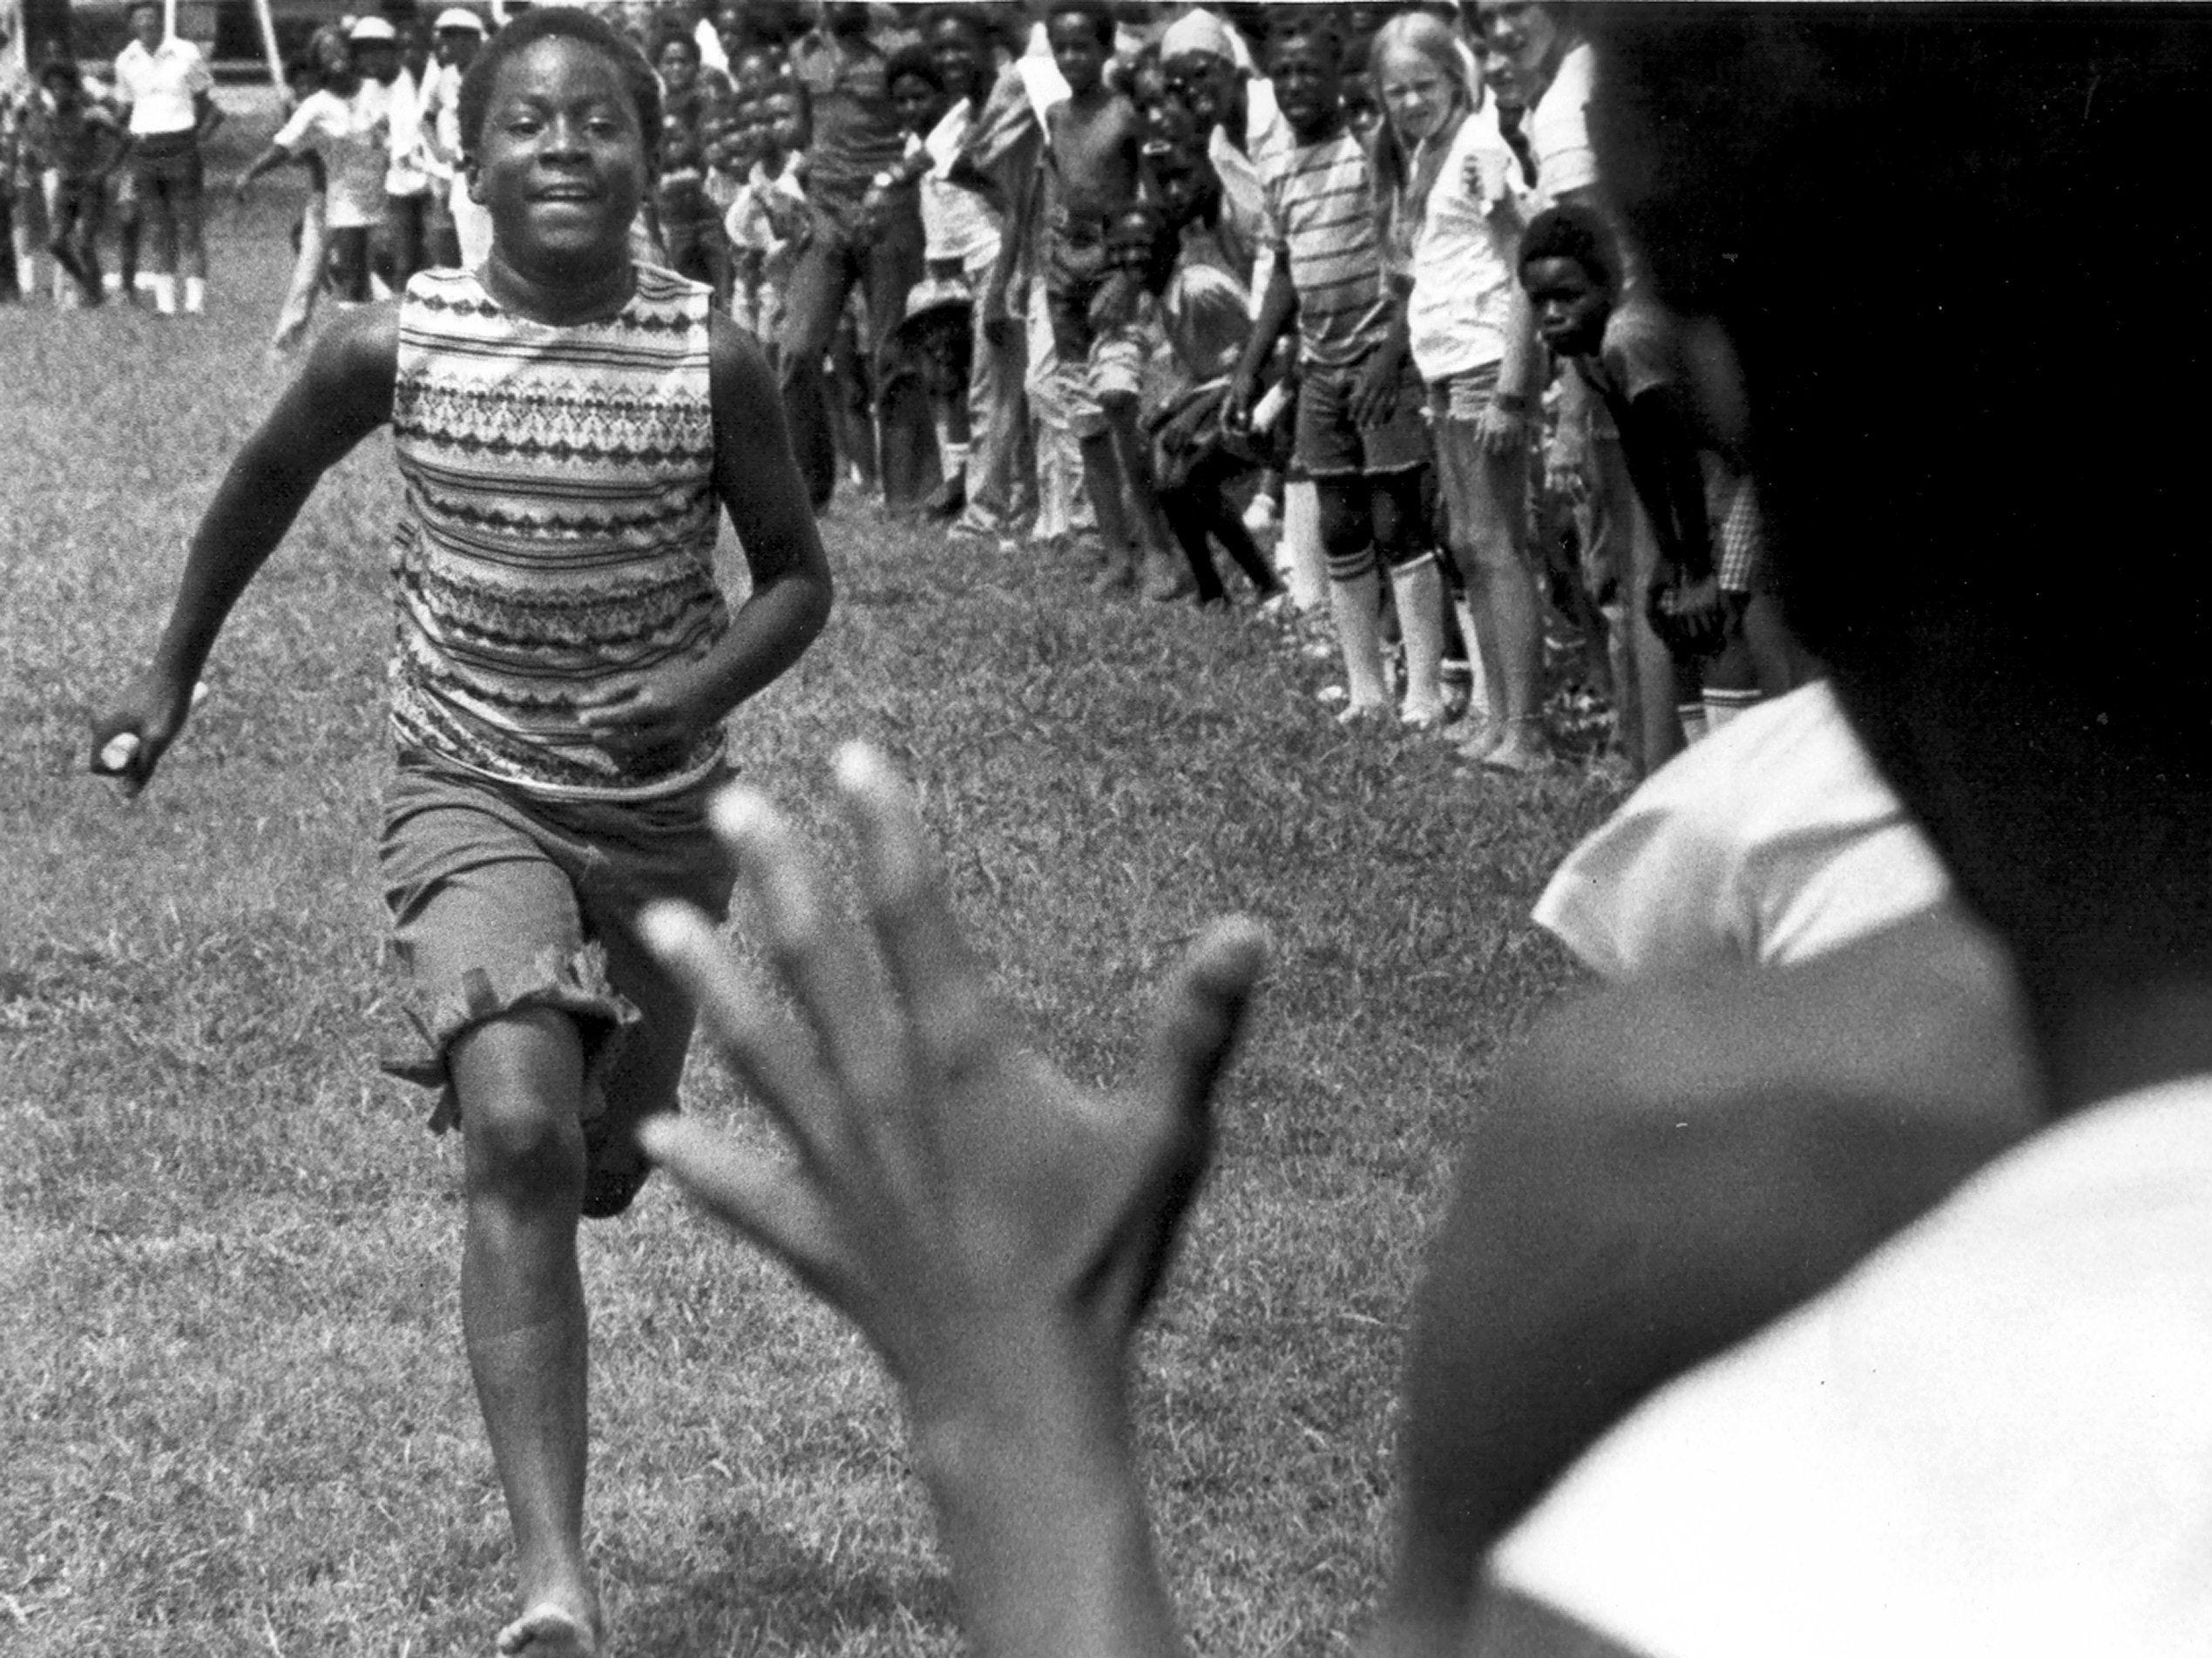 Marvel Locke,13, heads for the exchange in a relay during the Memphis Park Commission?s Zone Two track meet at Gaisman Park on 30 July 1976.